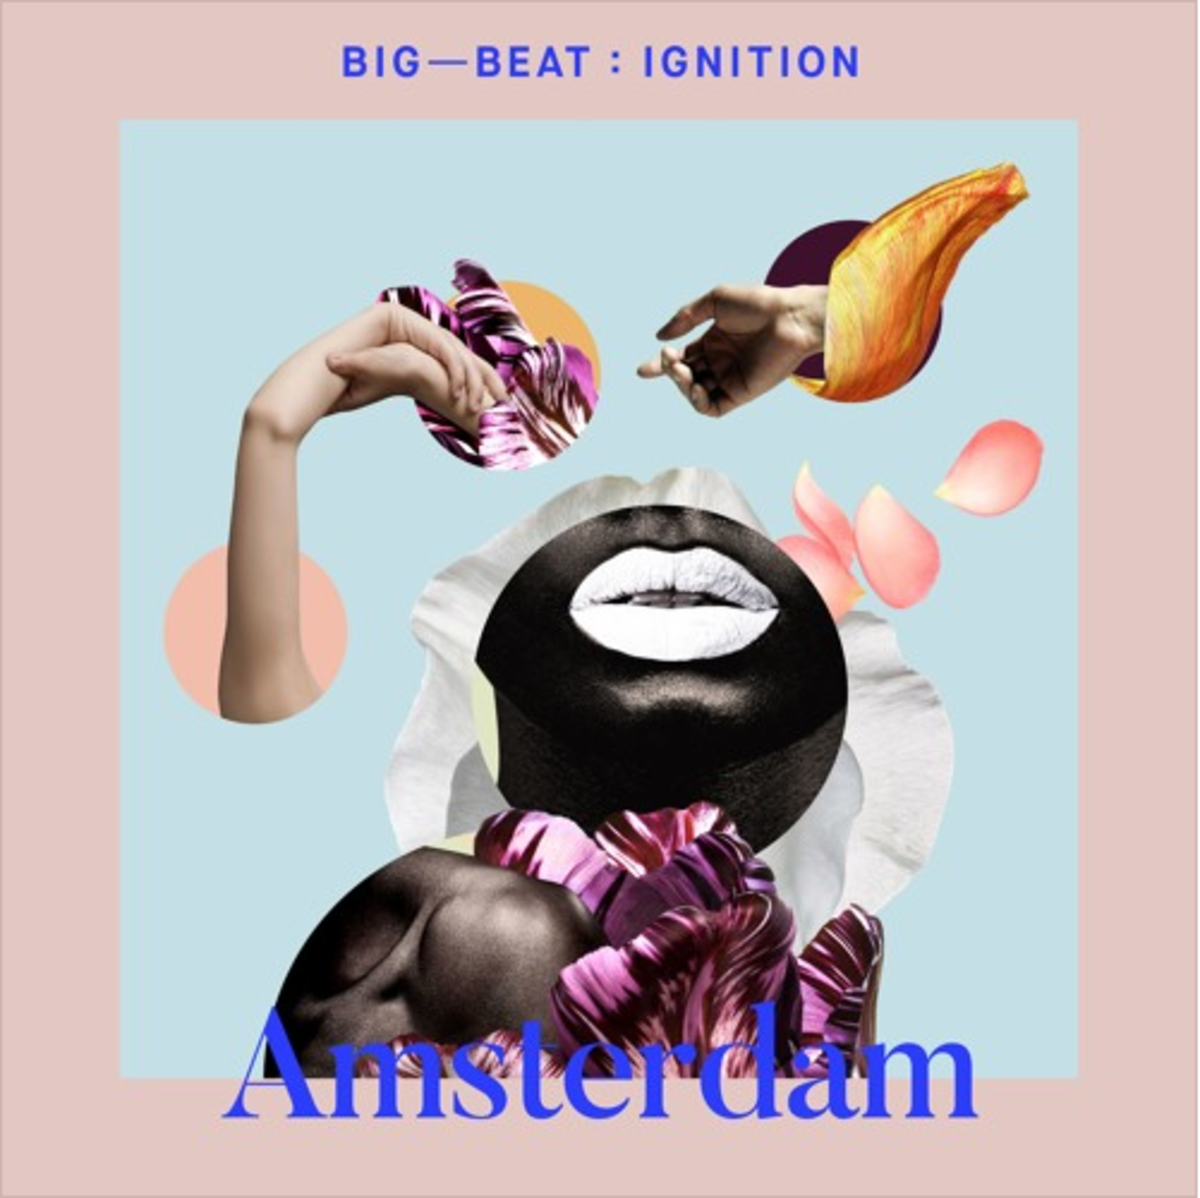 Big Beat Ignition Amsterdam Artwork